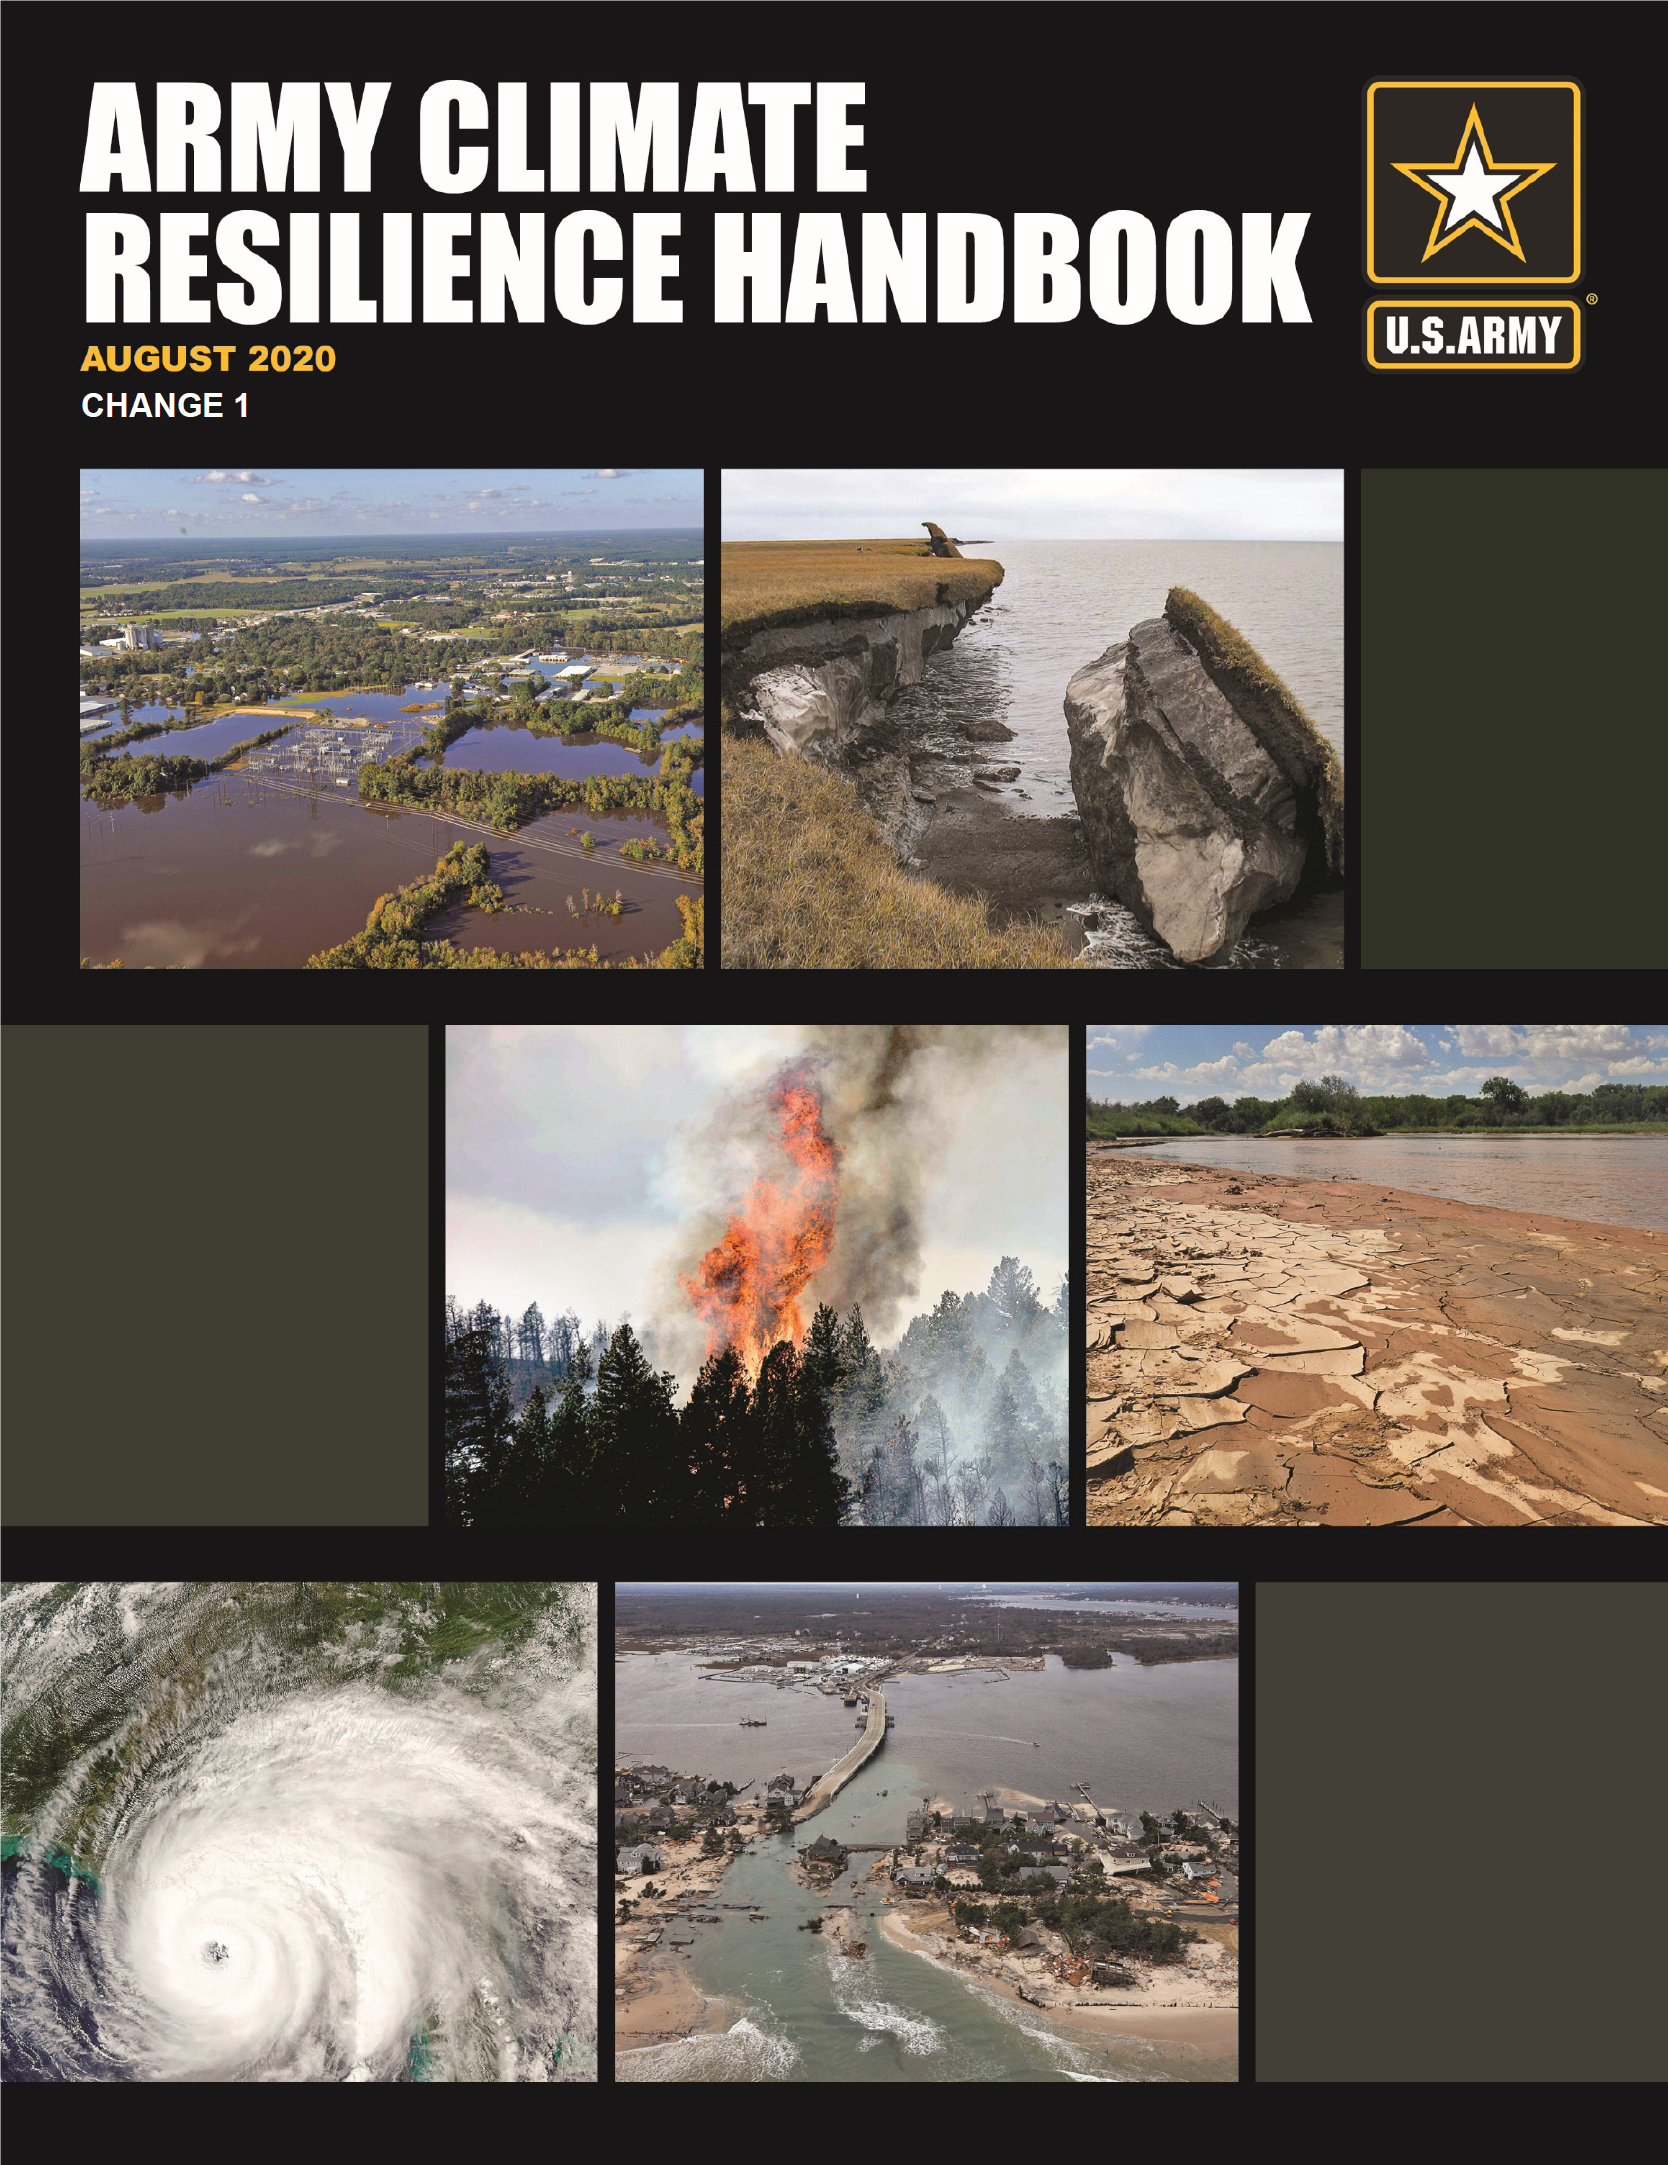 ACAT and Climate Resilience Handbook